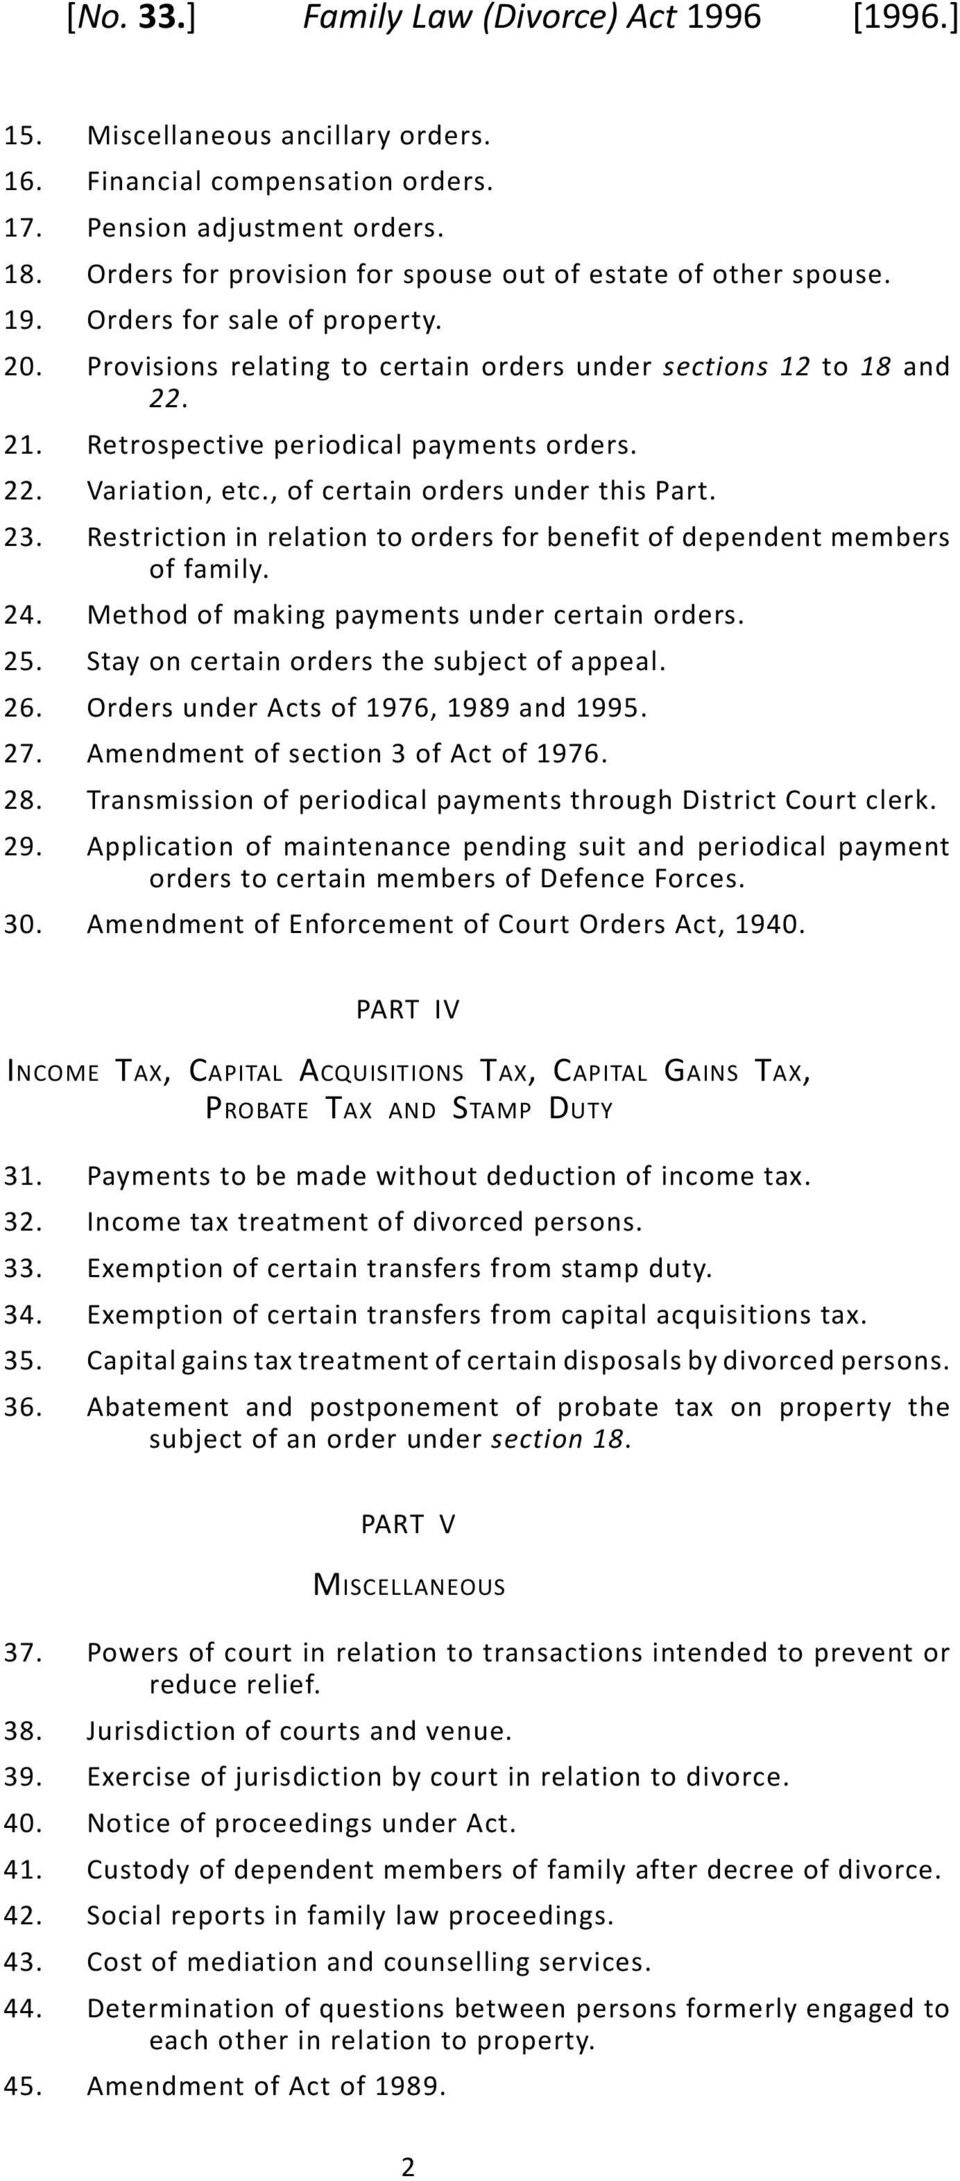 Retrospective periodical payments orders. Variation, etc., of certain orders under this Part. Restriction in relation to orders for benefit of dependent members of family.